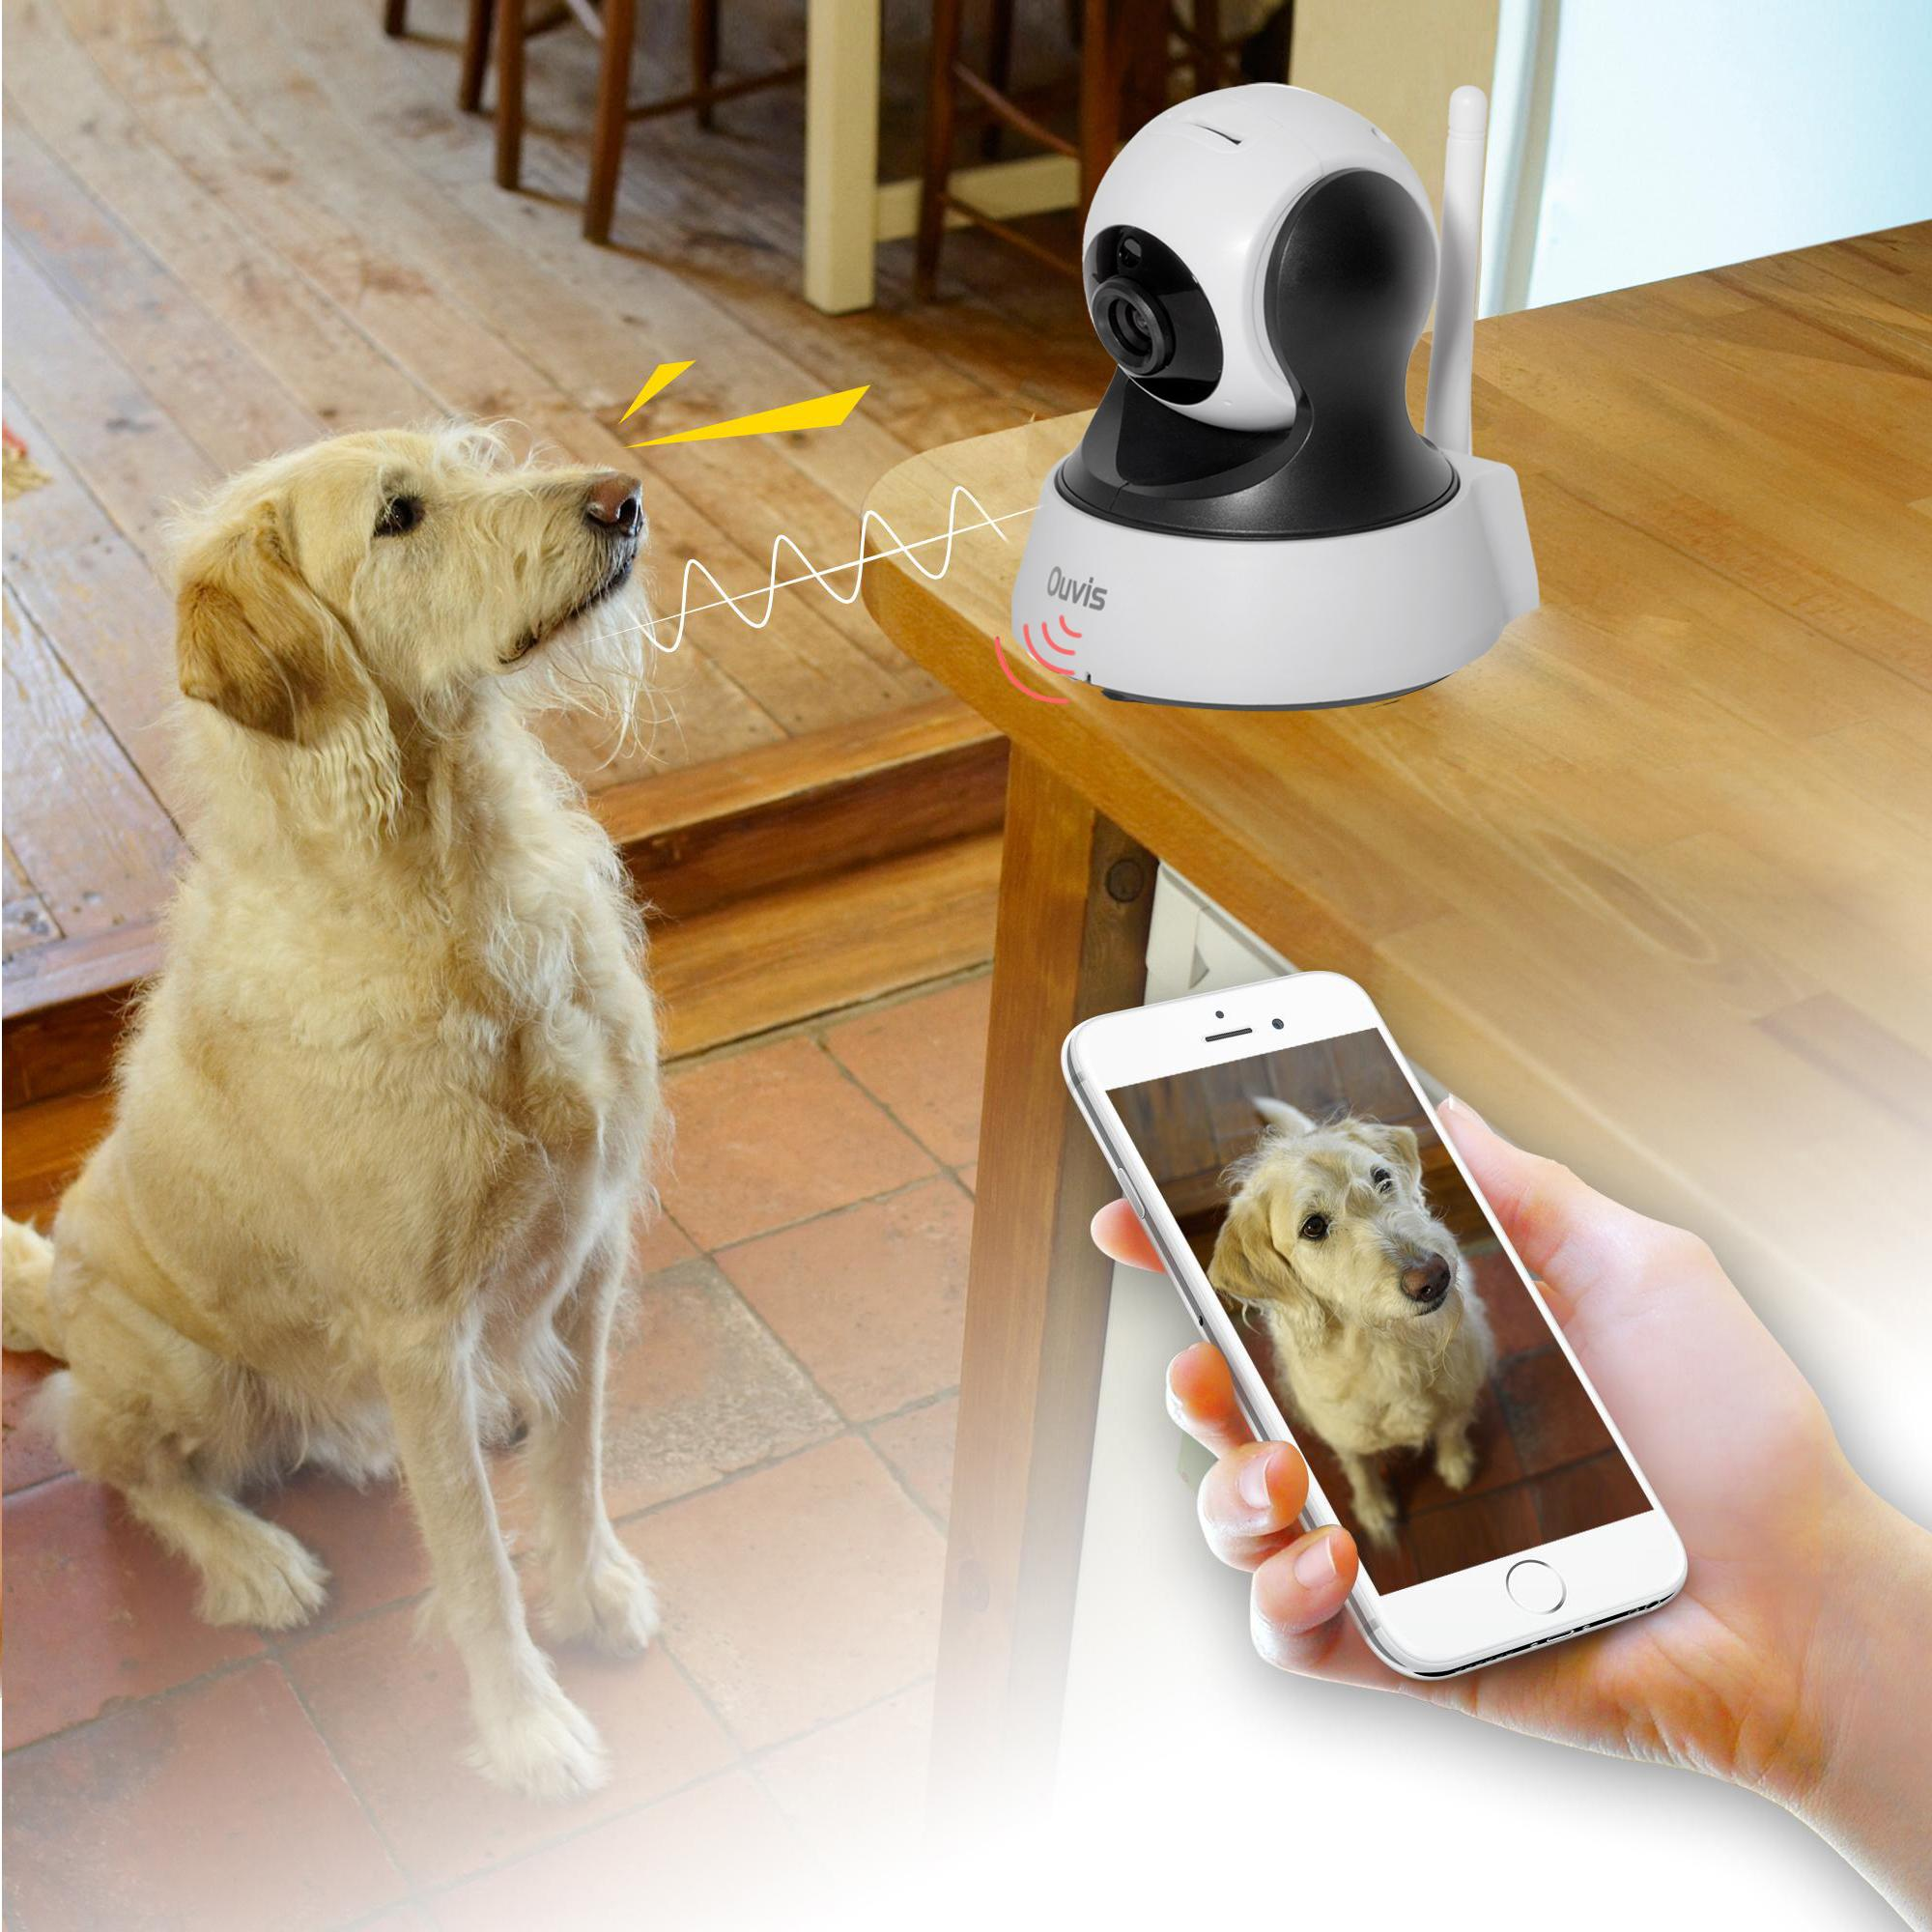 Amazon.com : Ouvis V3 Wireless Security Camera, 720P WiFi ...